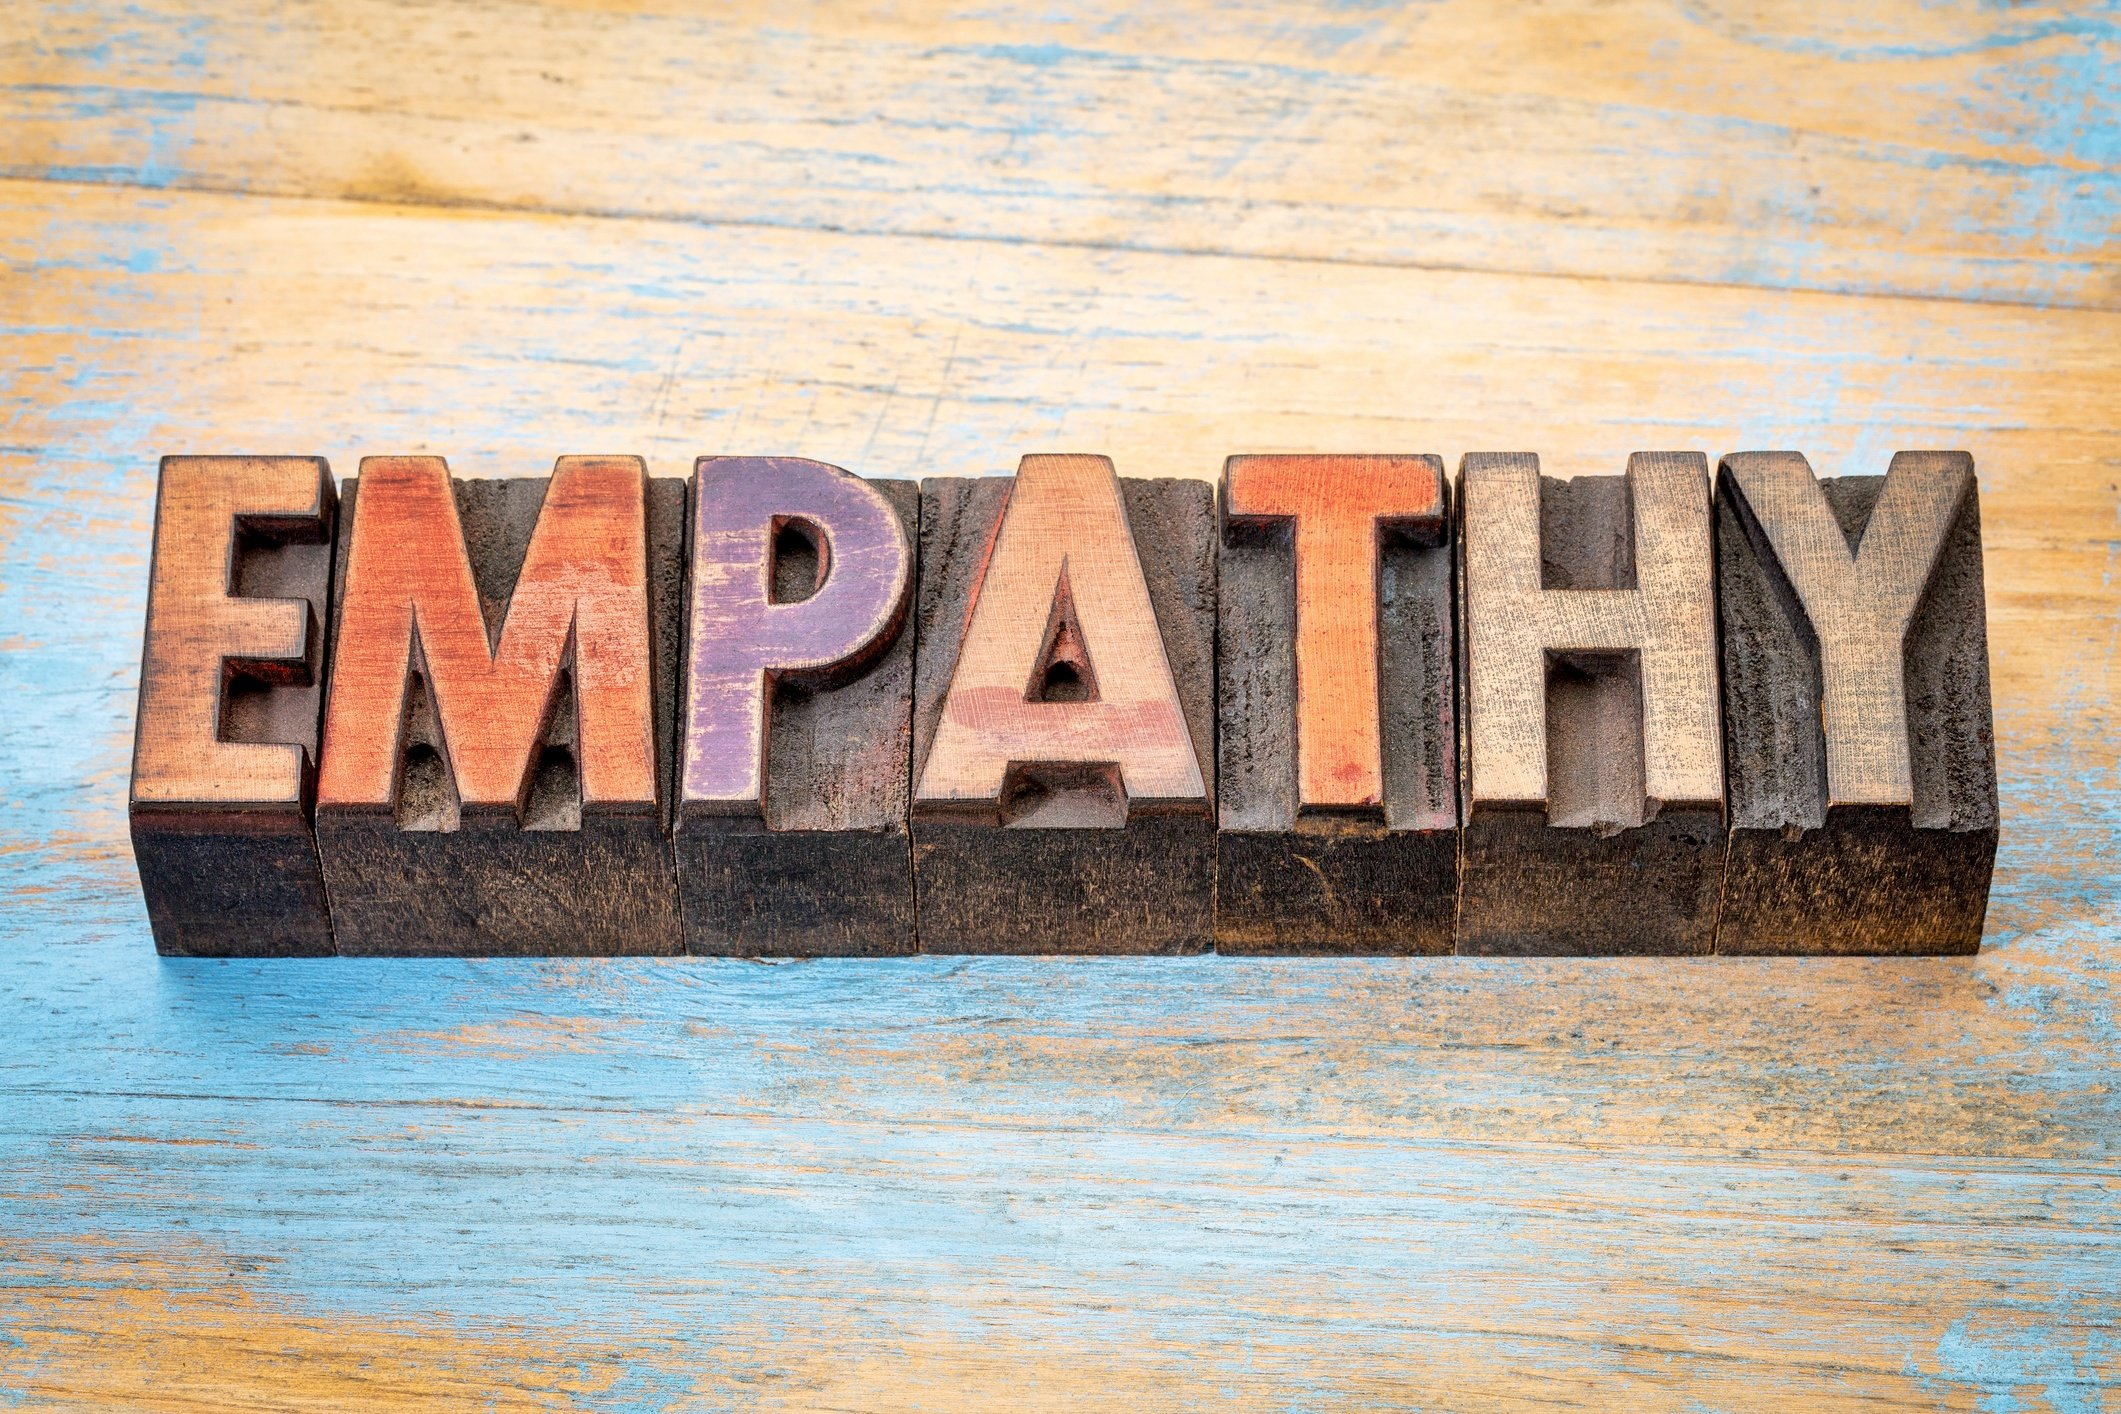 Three types of empathy defined